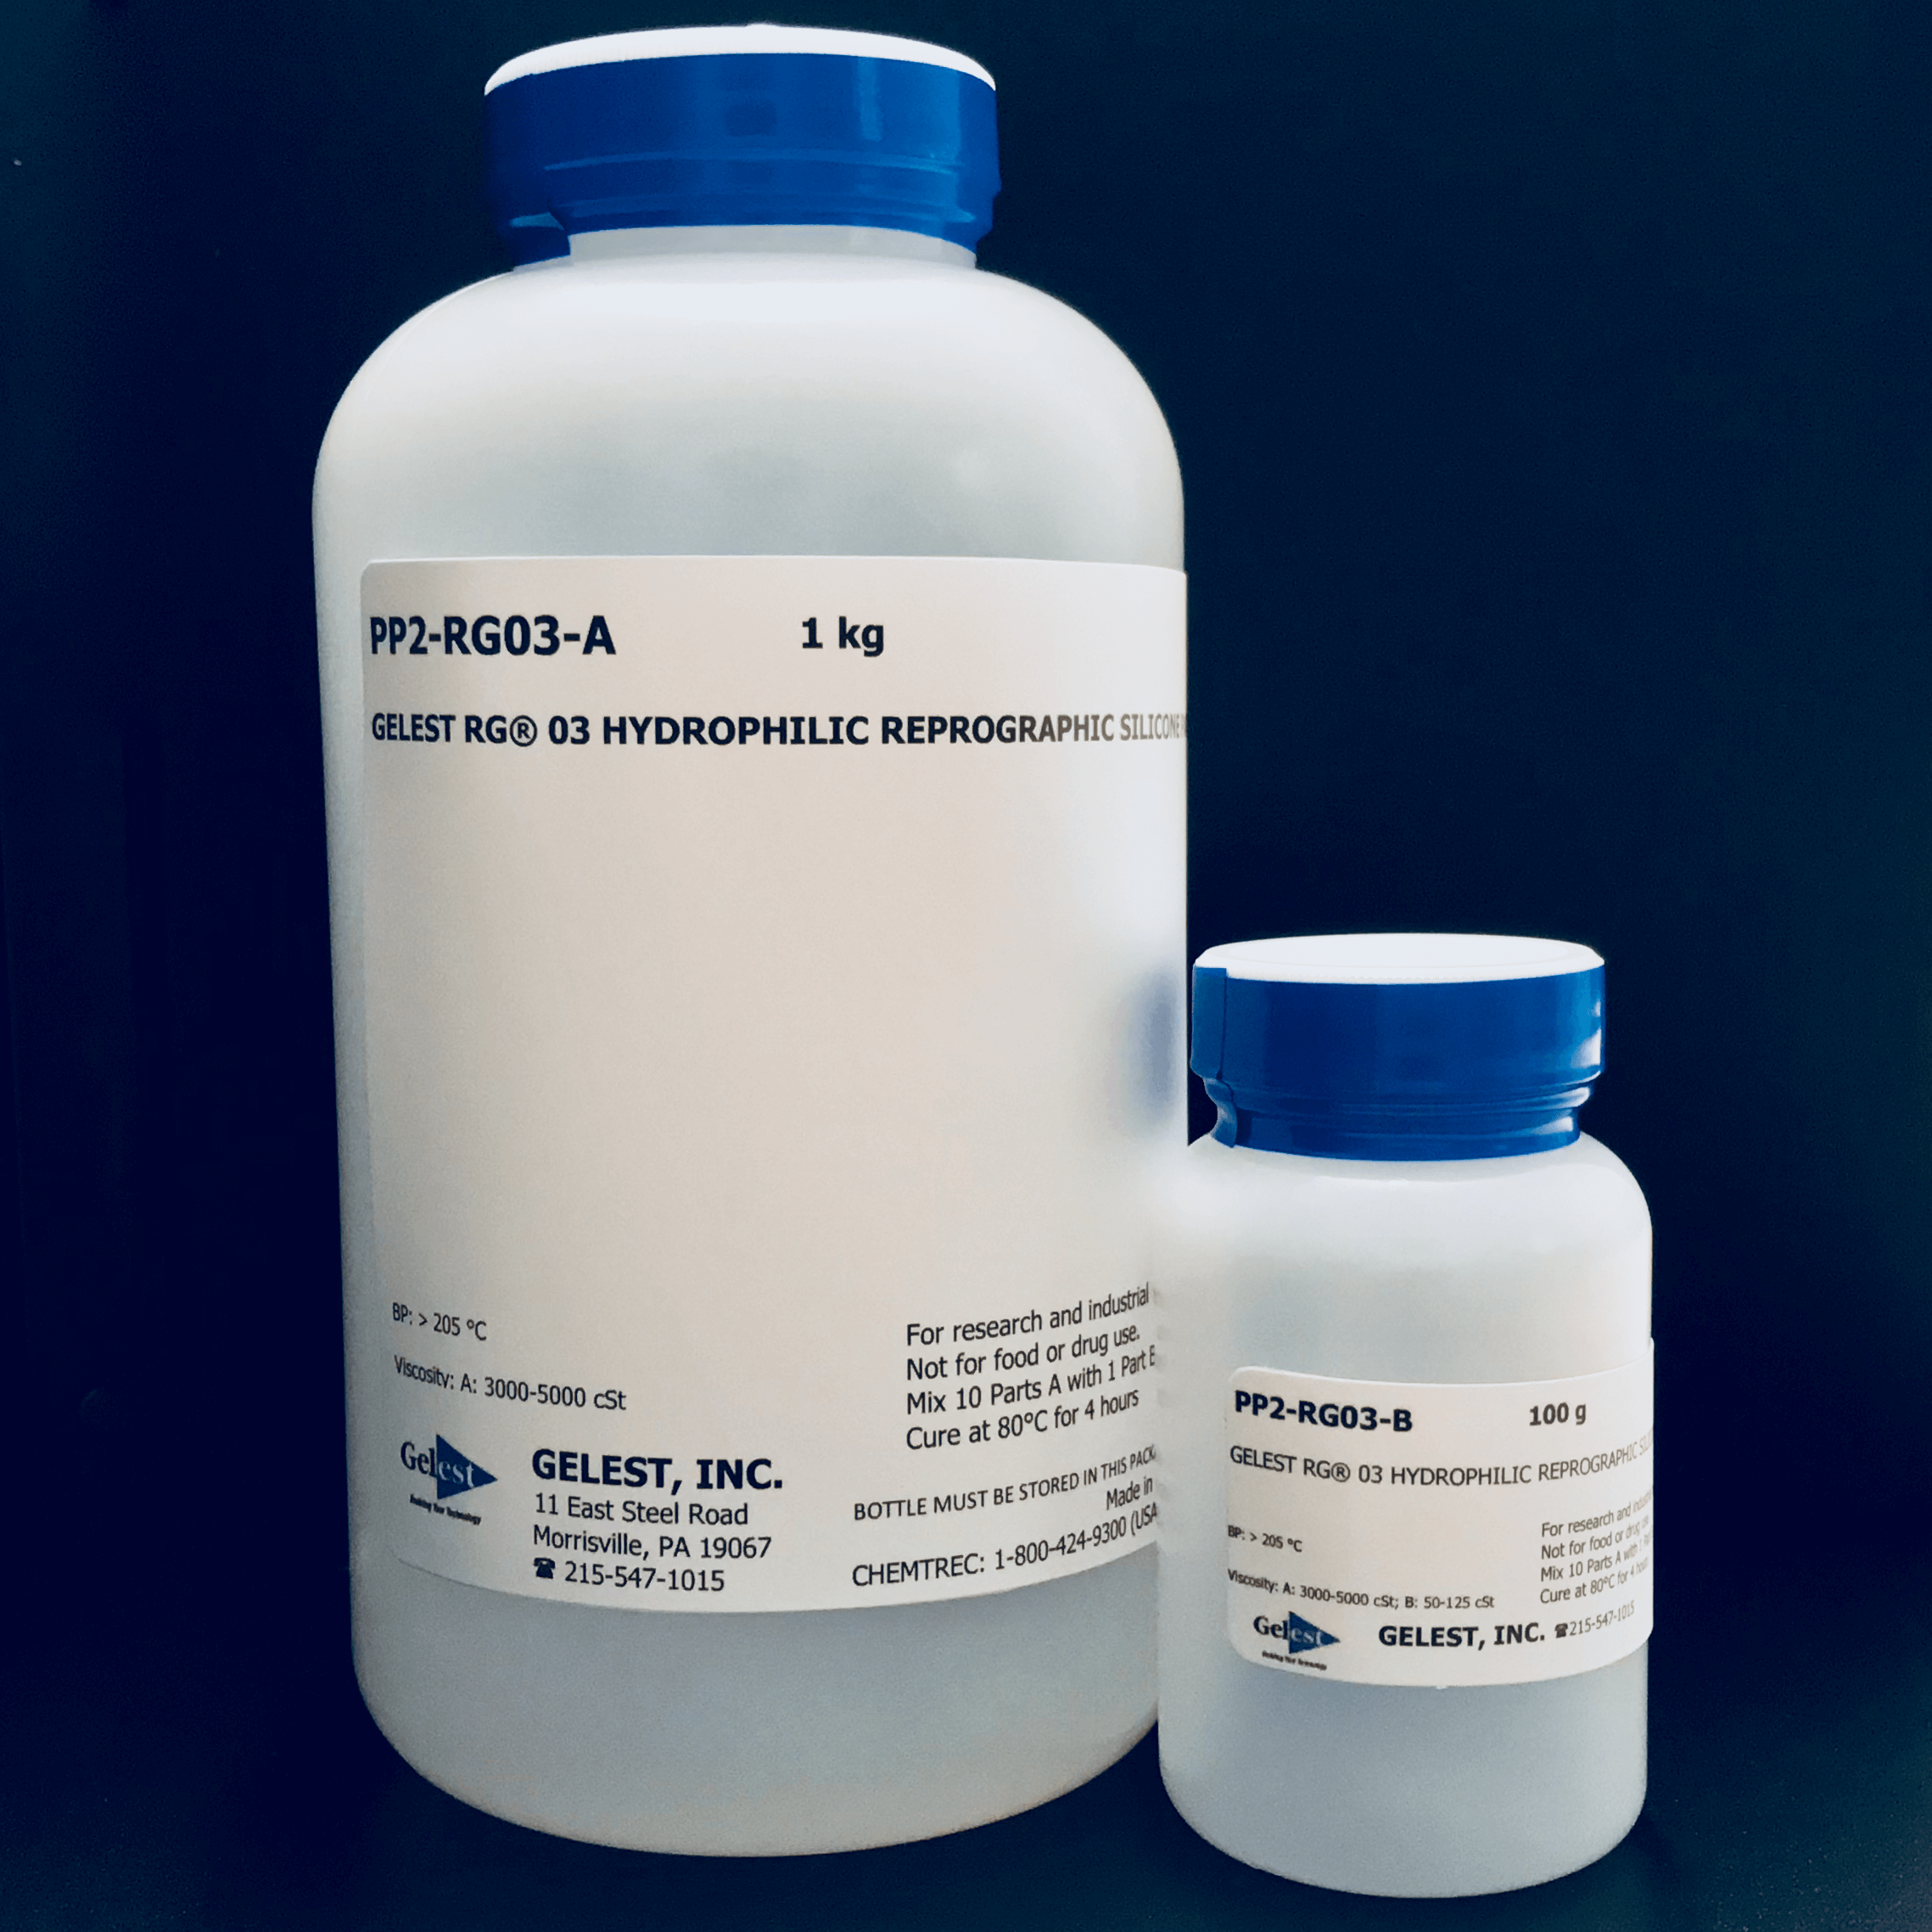 GELEST® RG 03: HYDROPHILIC REPROGRAPHIC SILICONE 1kg Kit